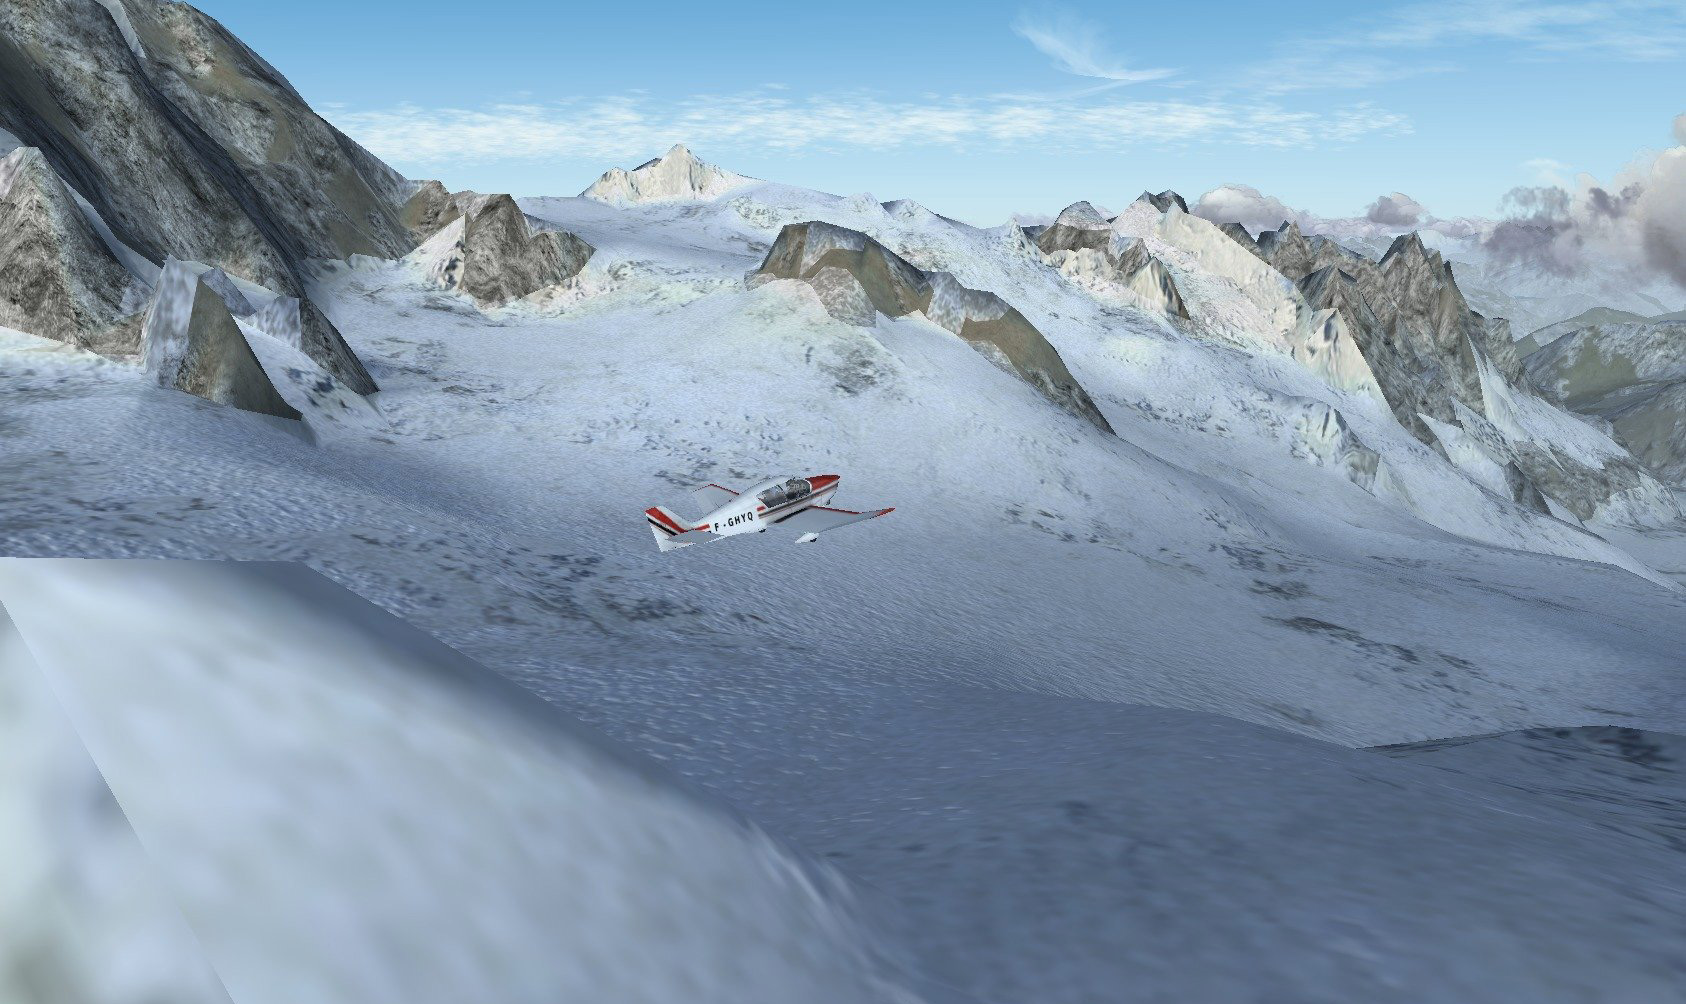 flight simulator games for PC are cheap